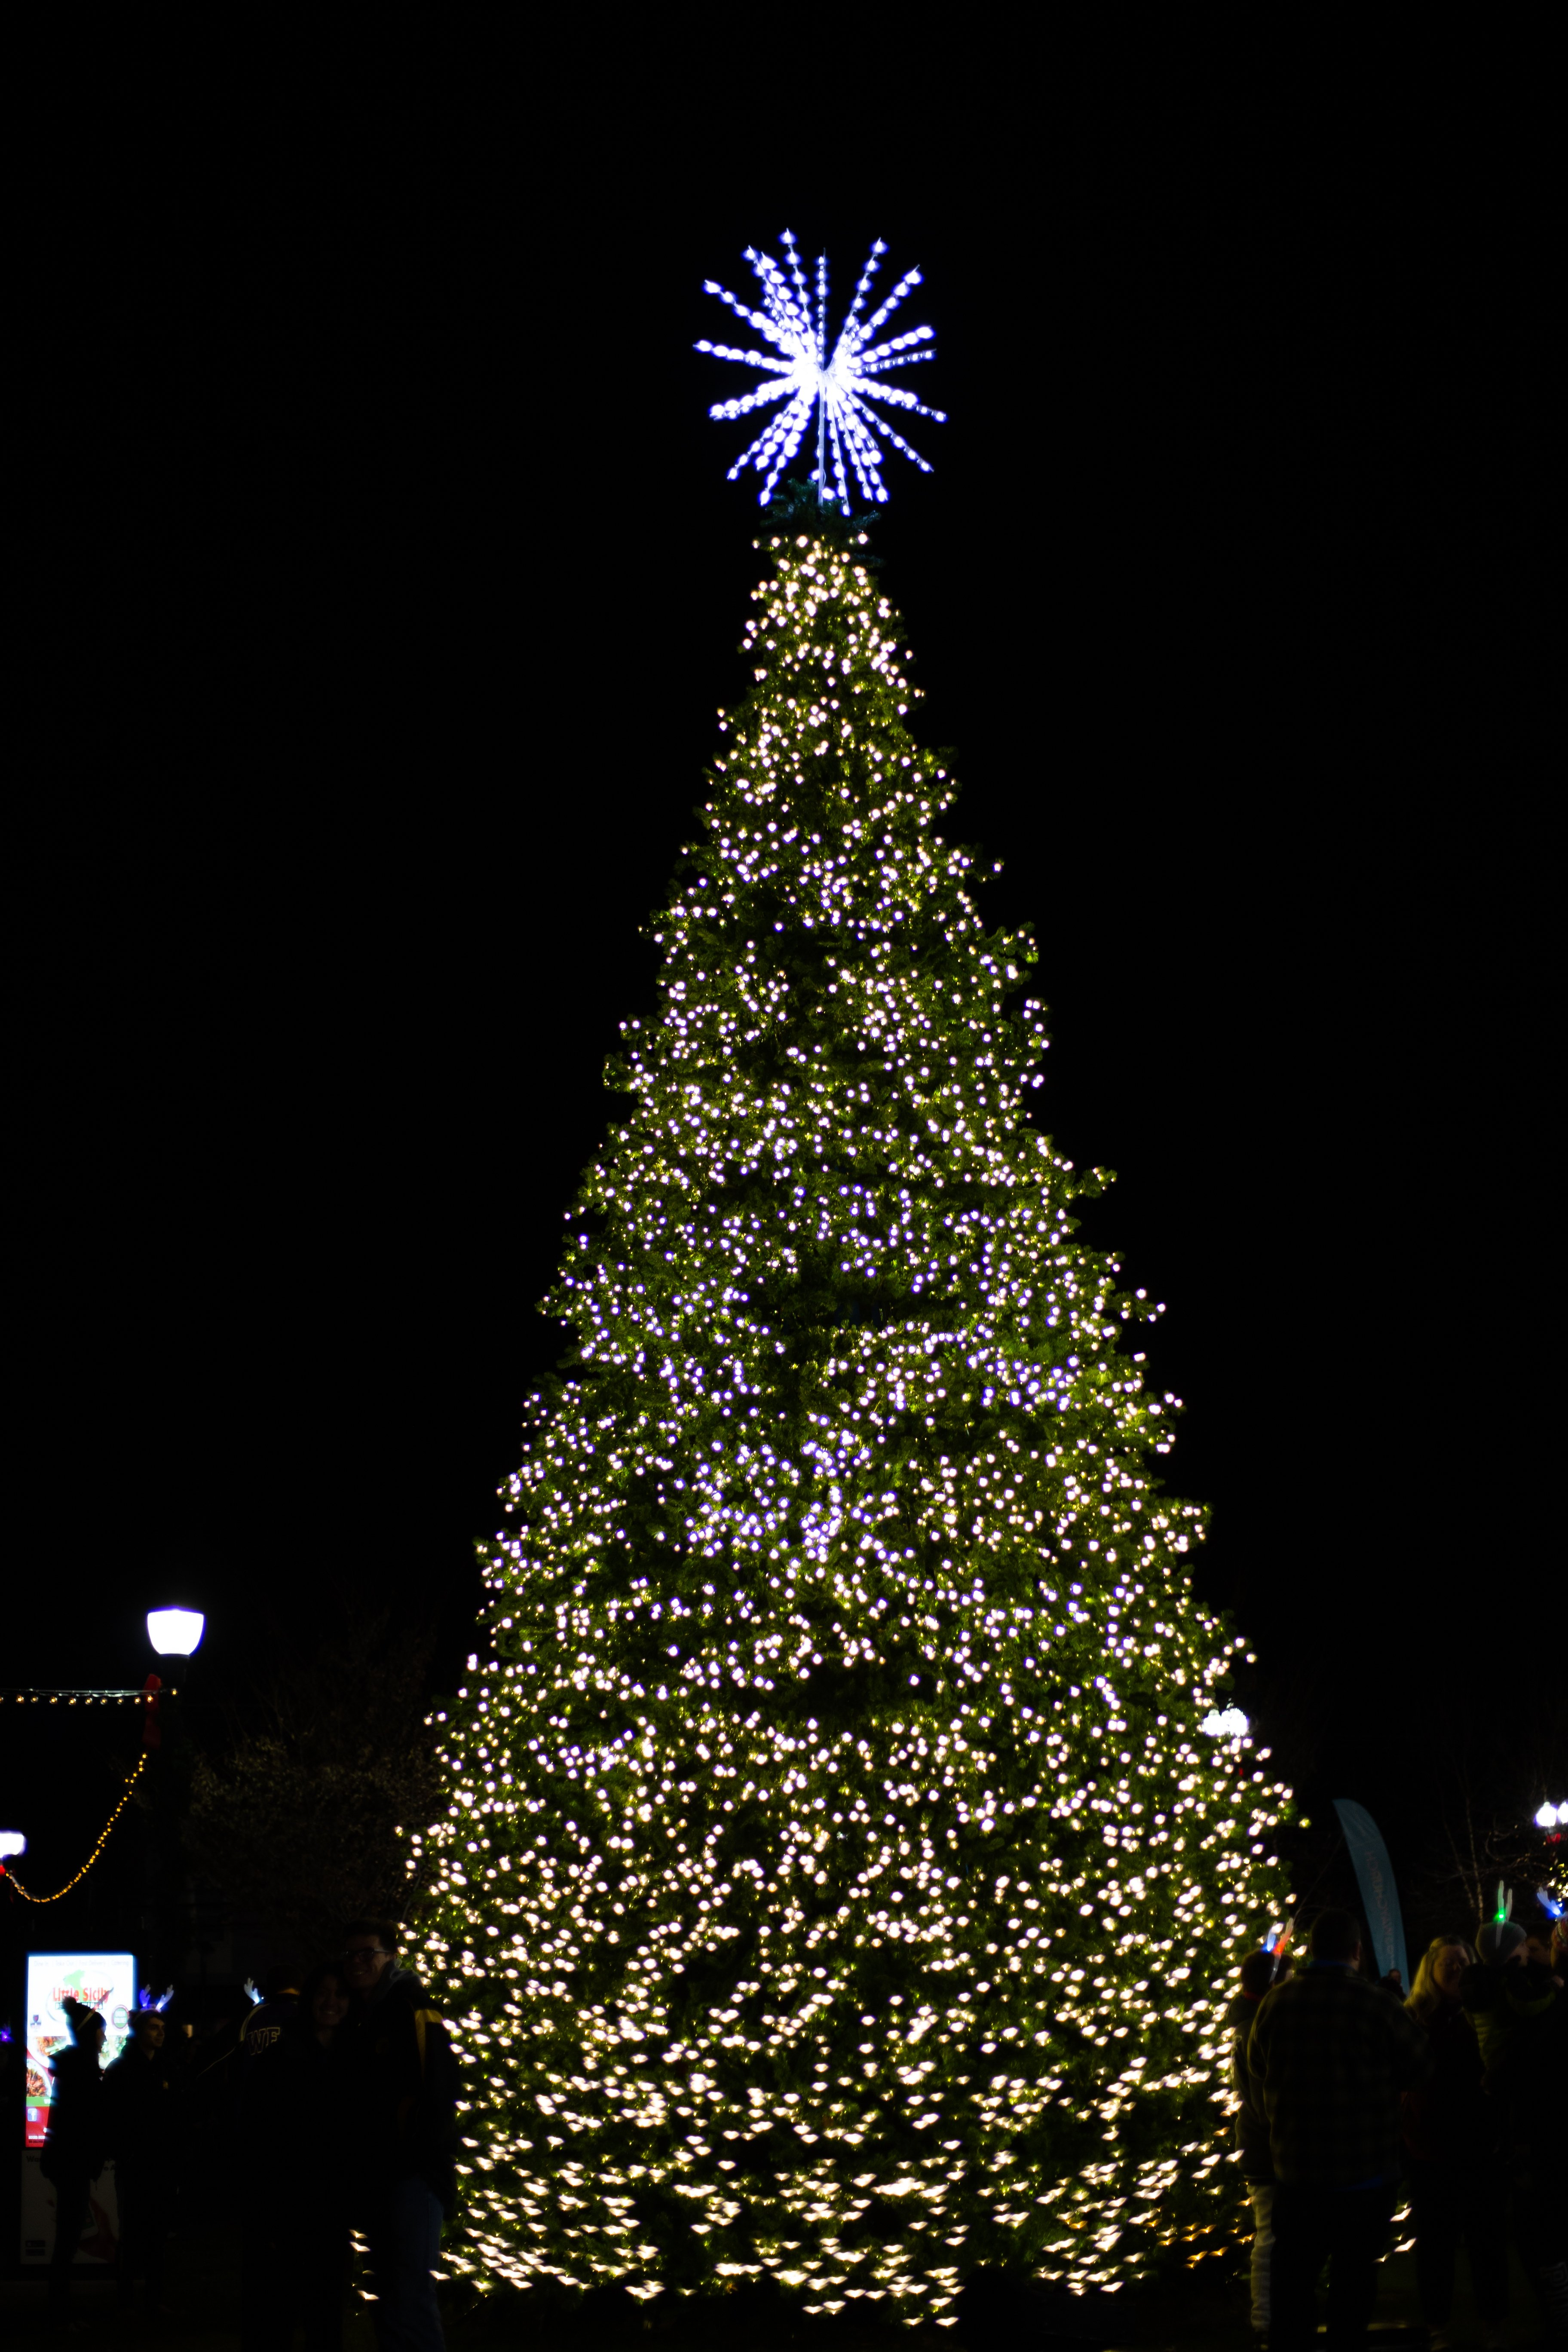 The tree displayed at the festival.